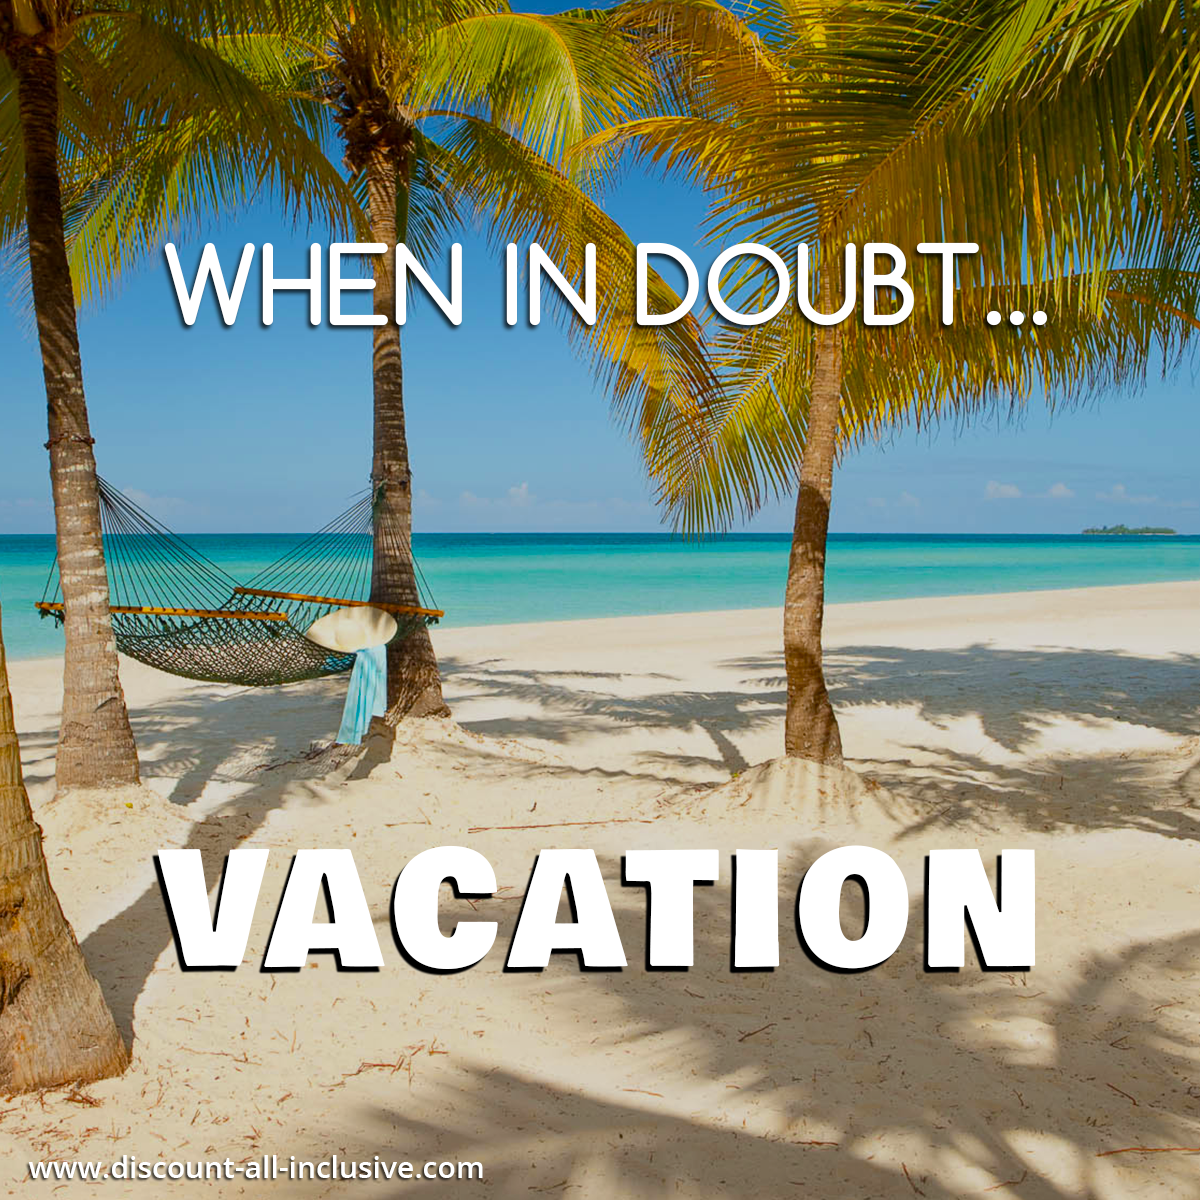 Because, you just can't go wrong there, regardless. #vacation